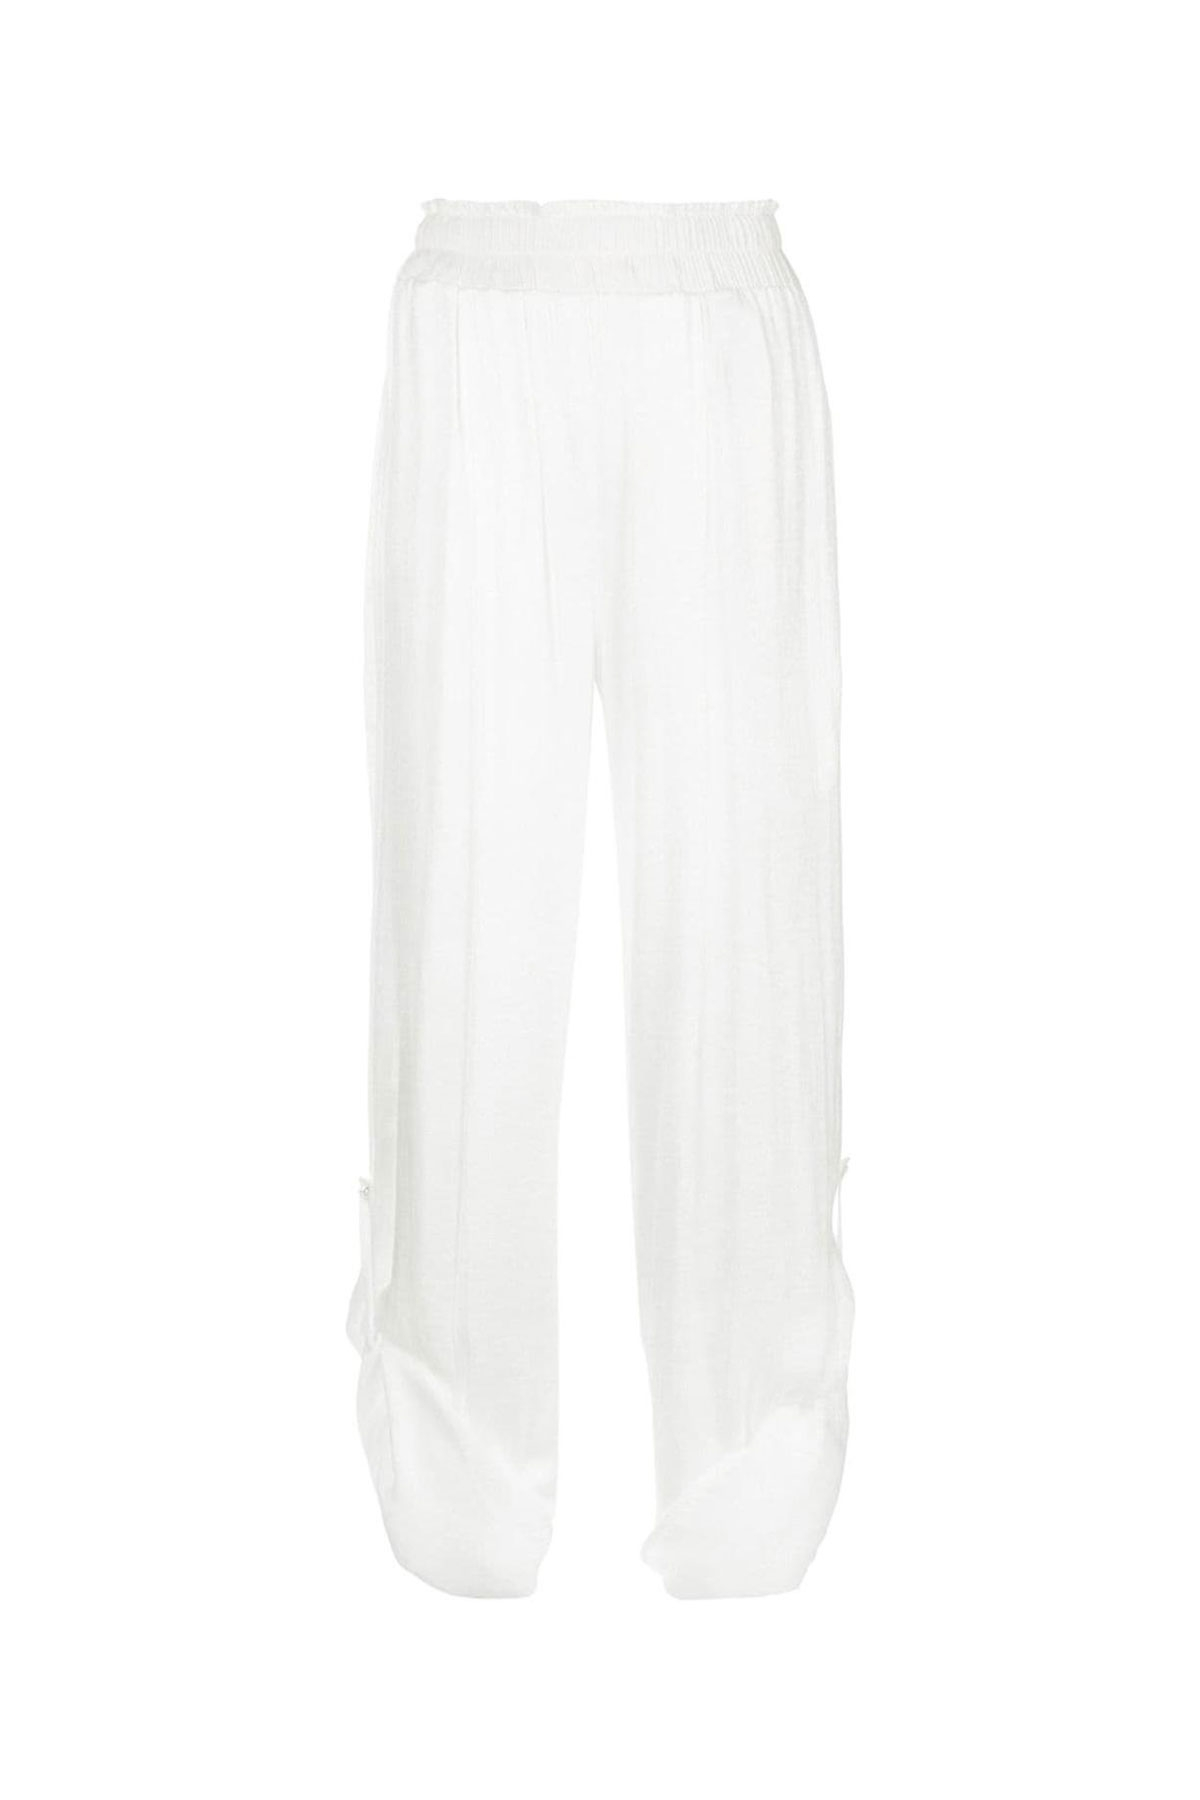 WHITE HIGH WAISTED PAPER BAG PALAZZO